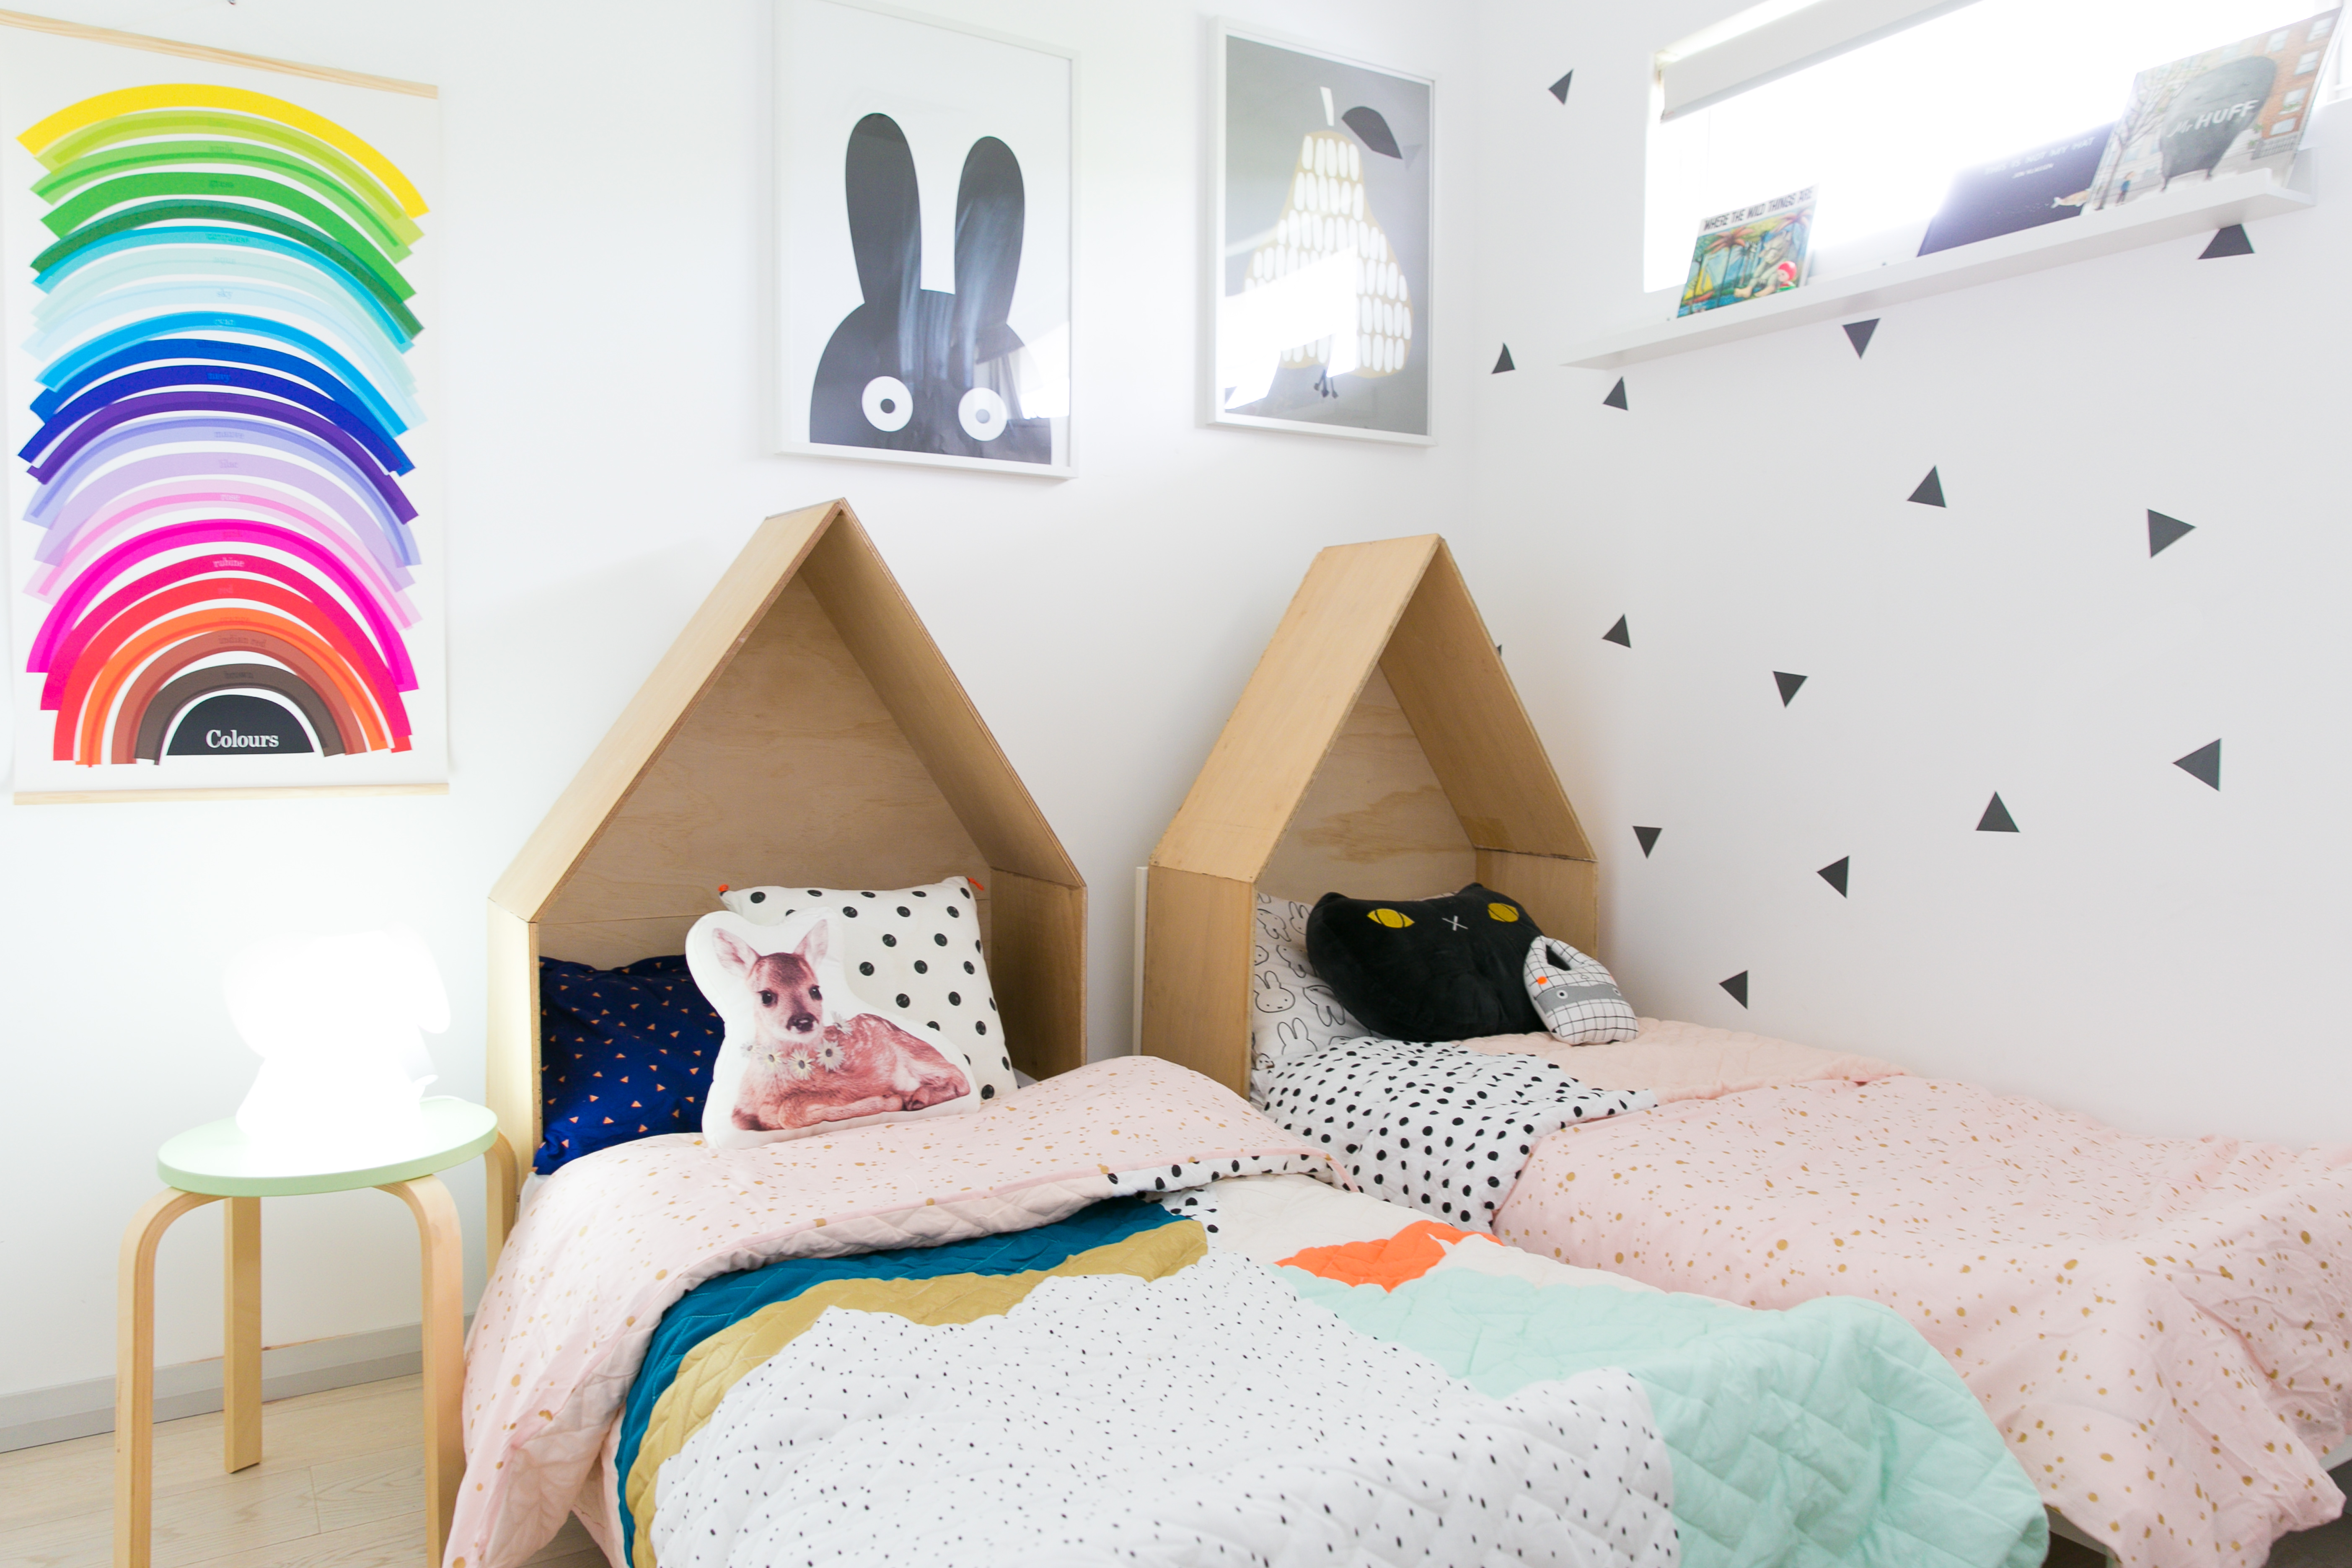 Apartment Therapy & Creative \u0026 Fun Kids Bedroom Decorating Ideas | Apartment Therapy